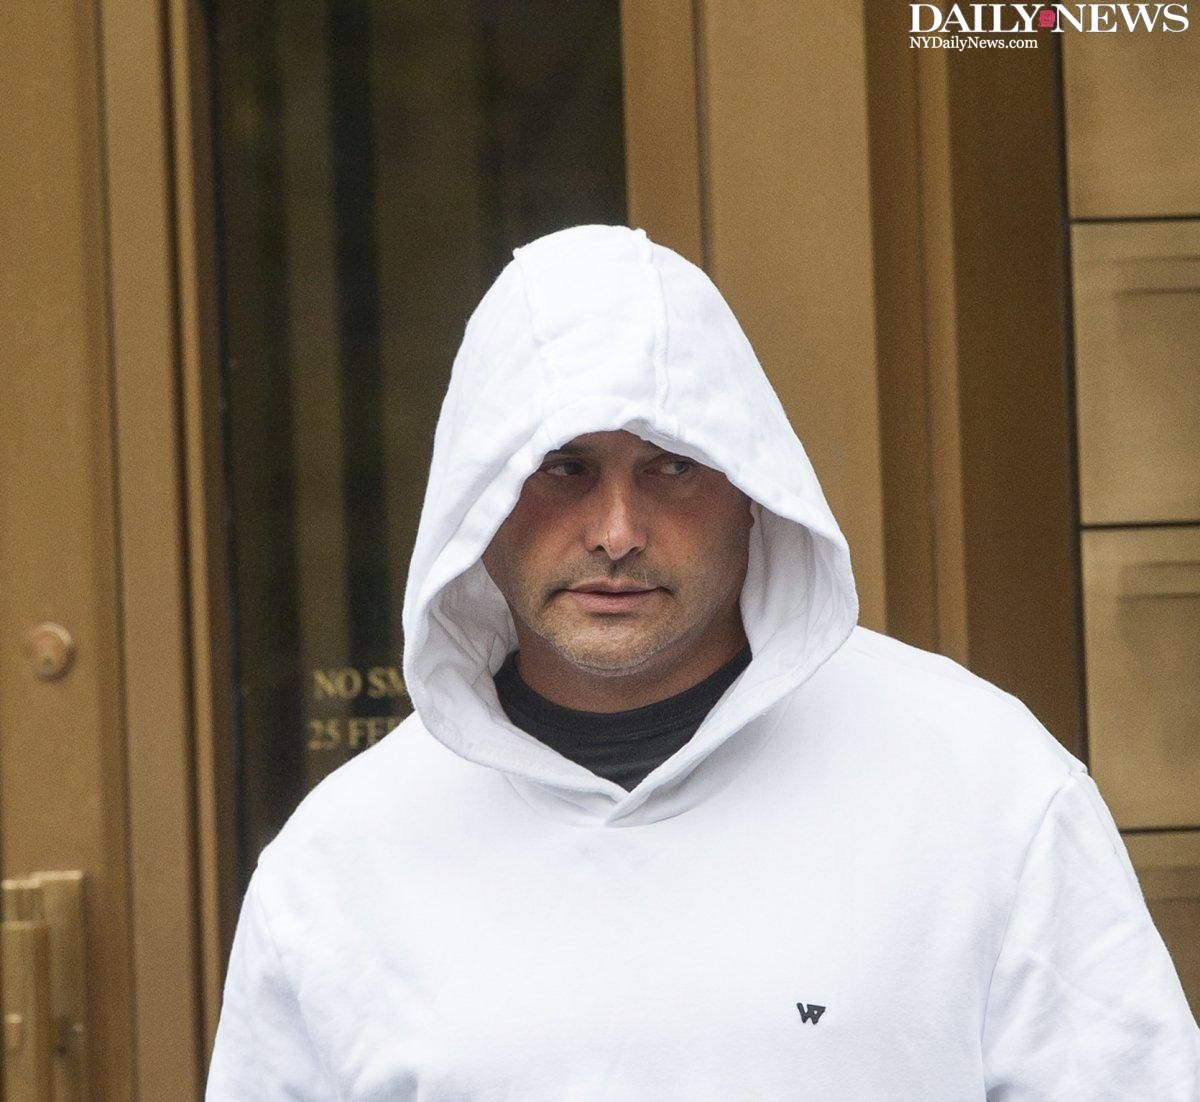 JUST IN: Craig Carton resigns from WFAN amid claim he operated Ponzi scheme. https://t.co/fhsmoHLmt6 https://t.co/gOQxpM382e